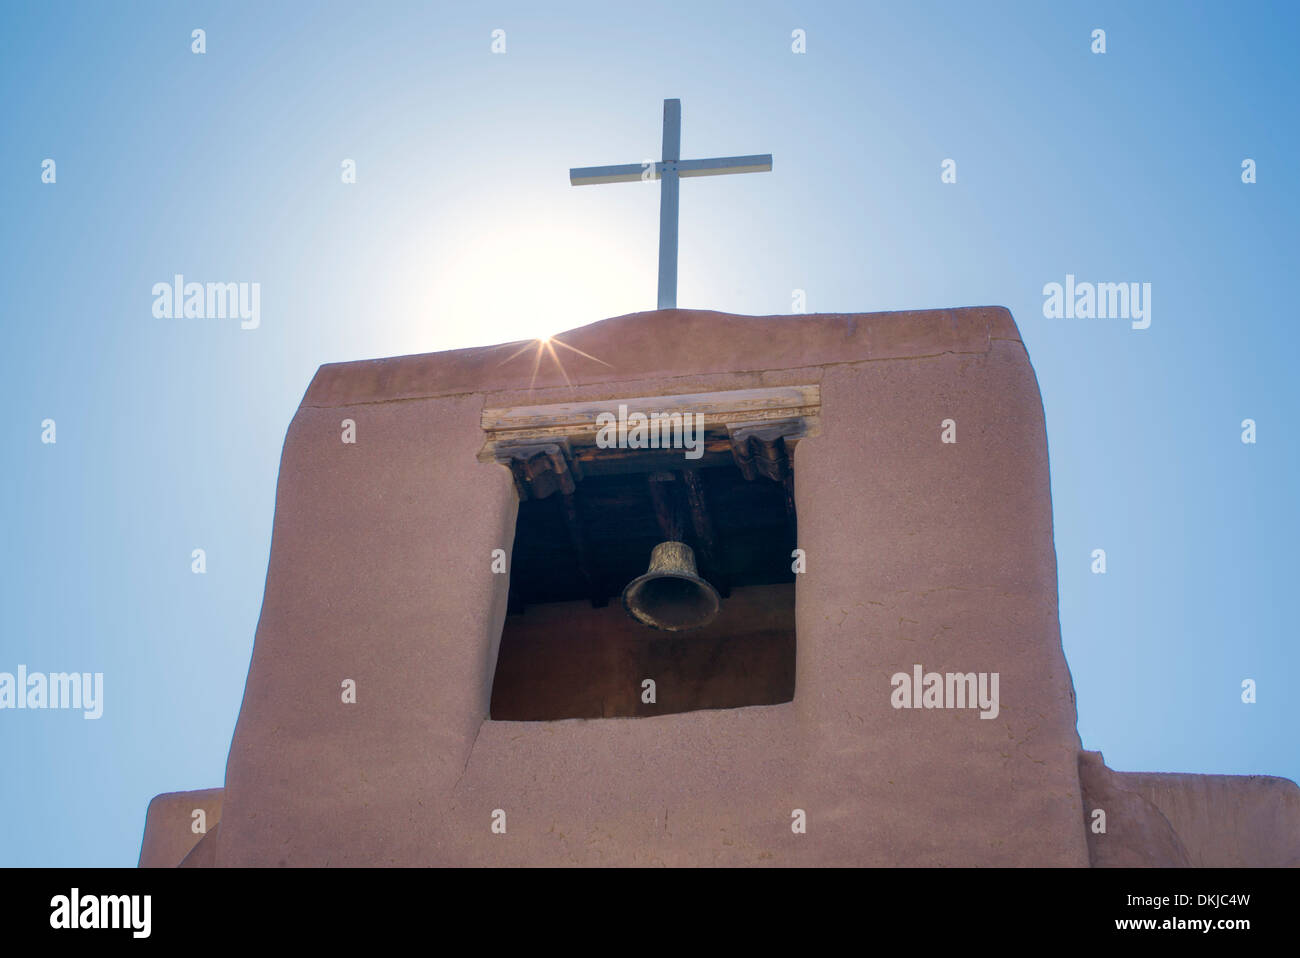 Cross and church bell. San Miguel Mission. Santa Fe, New Mexico. - Stock Image